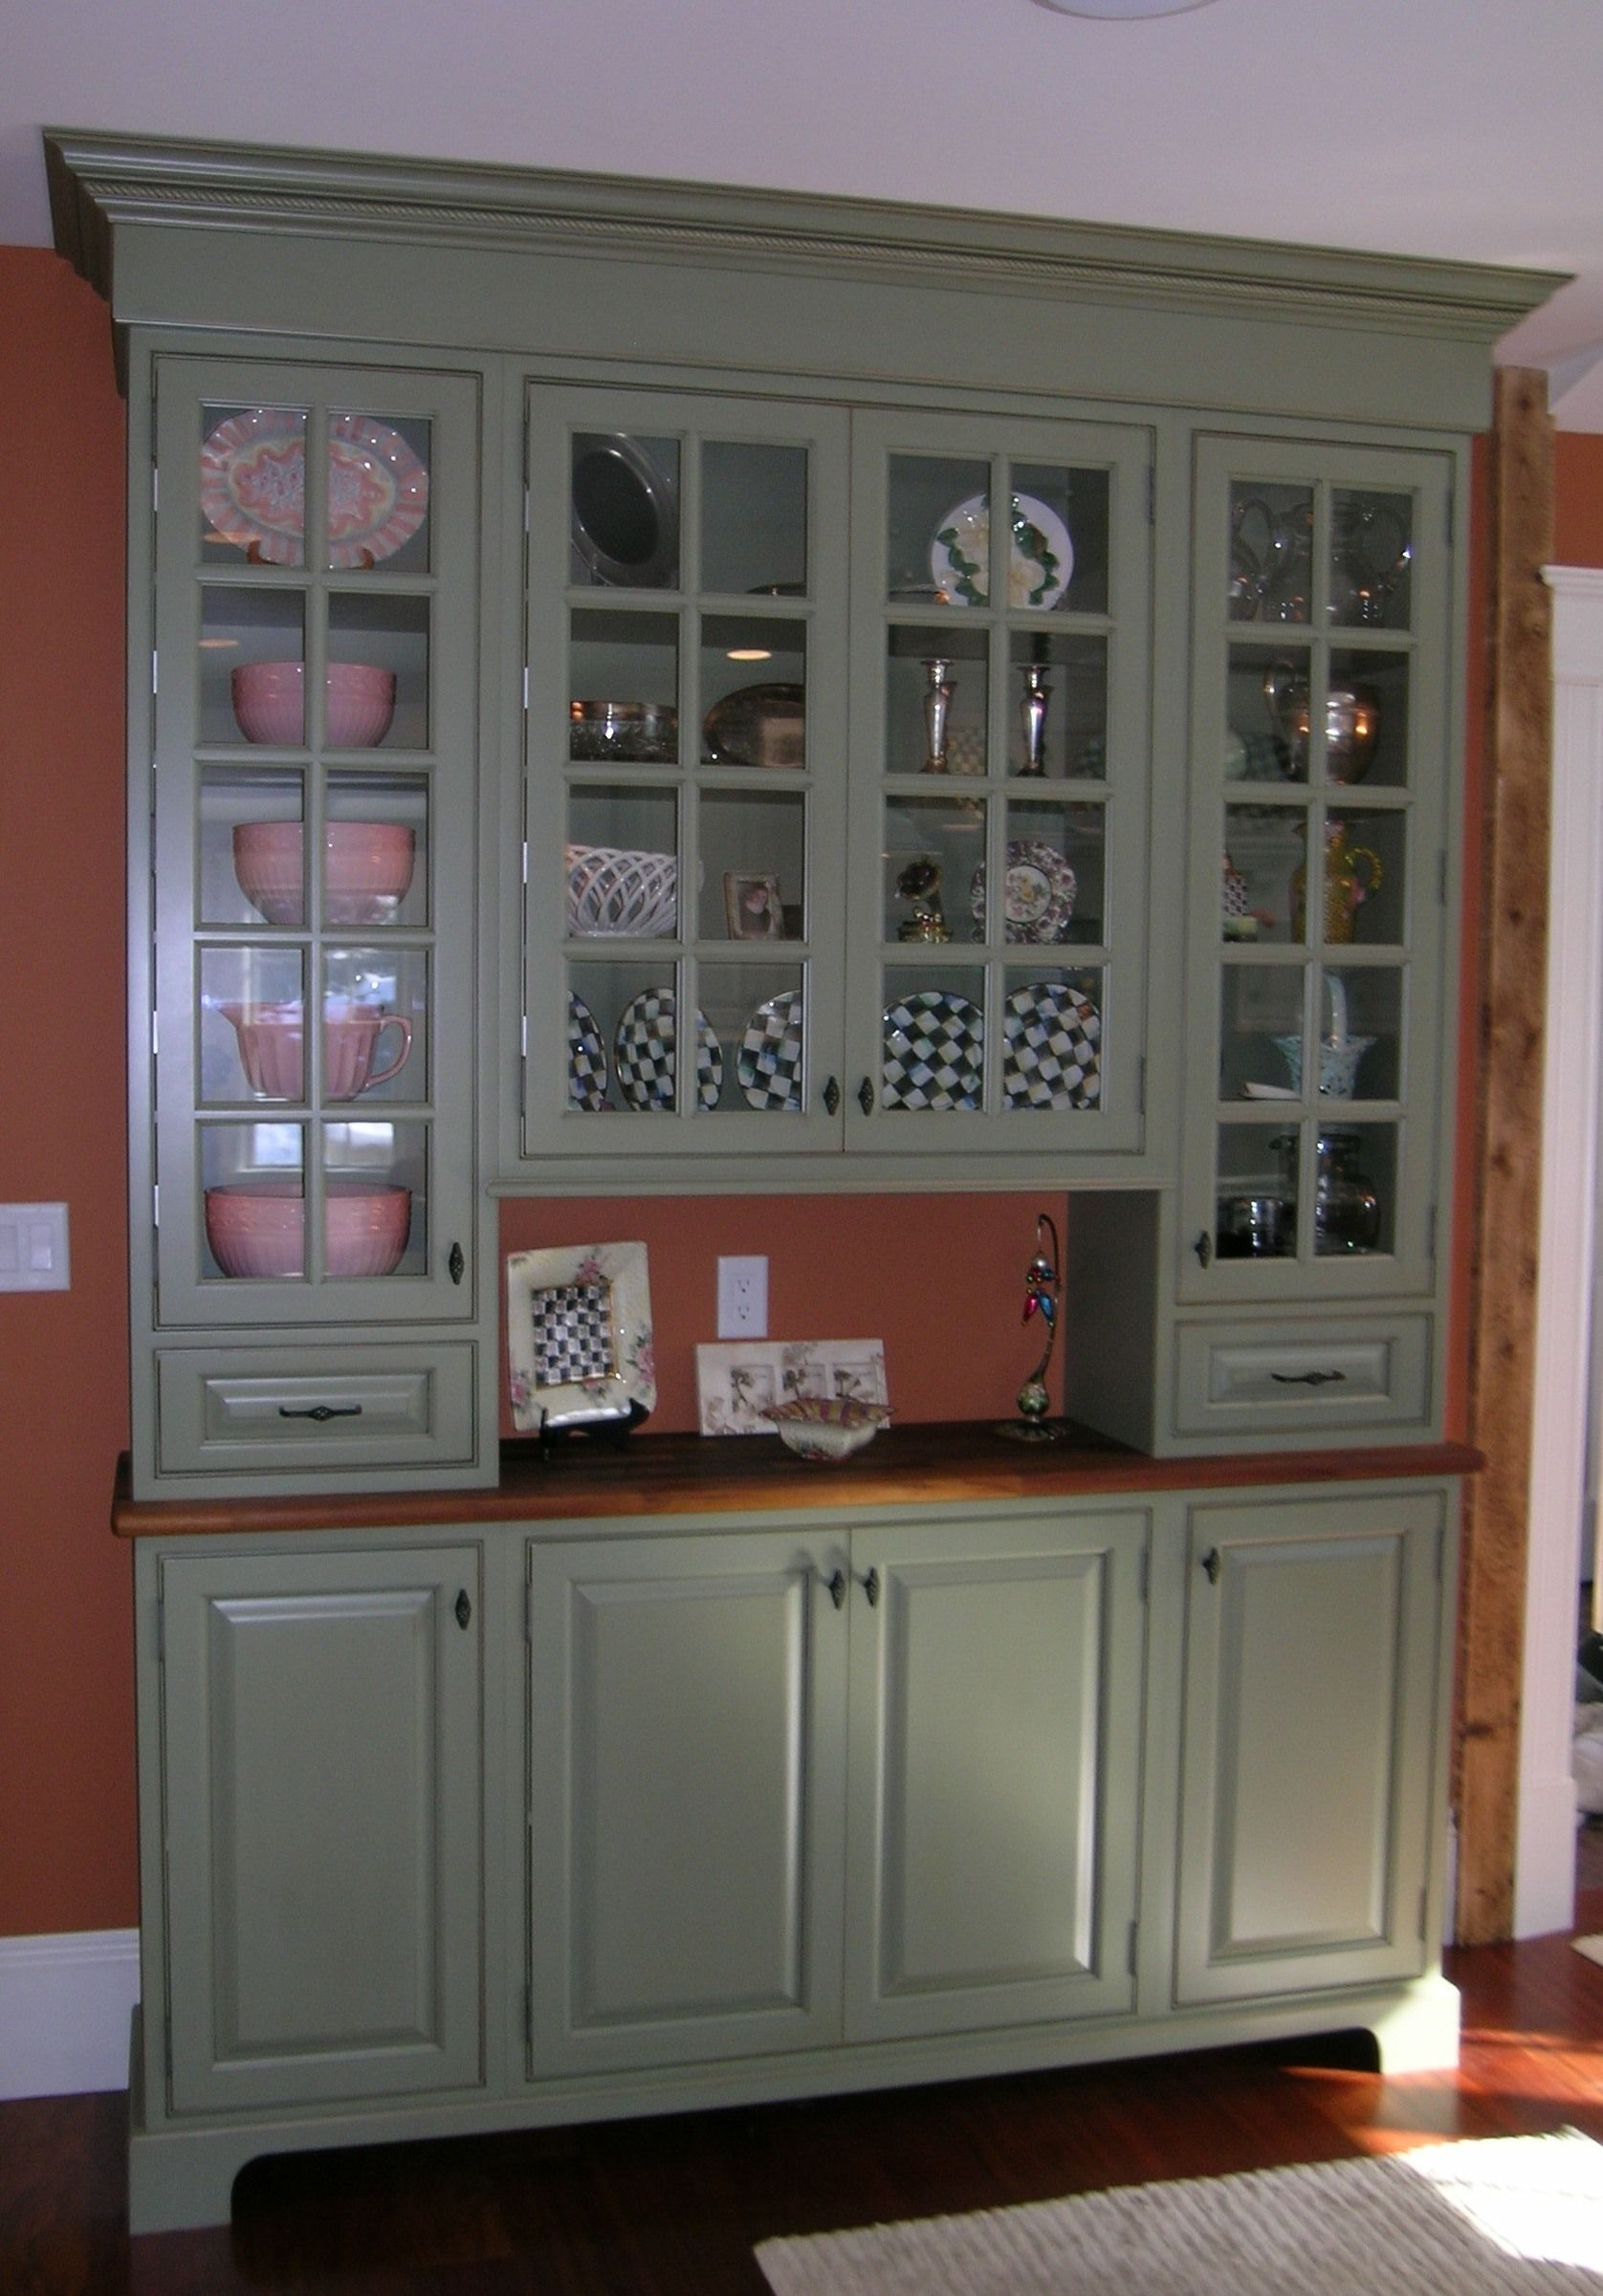 Going to be painting the kitchen this week...Sage